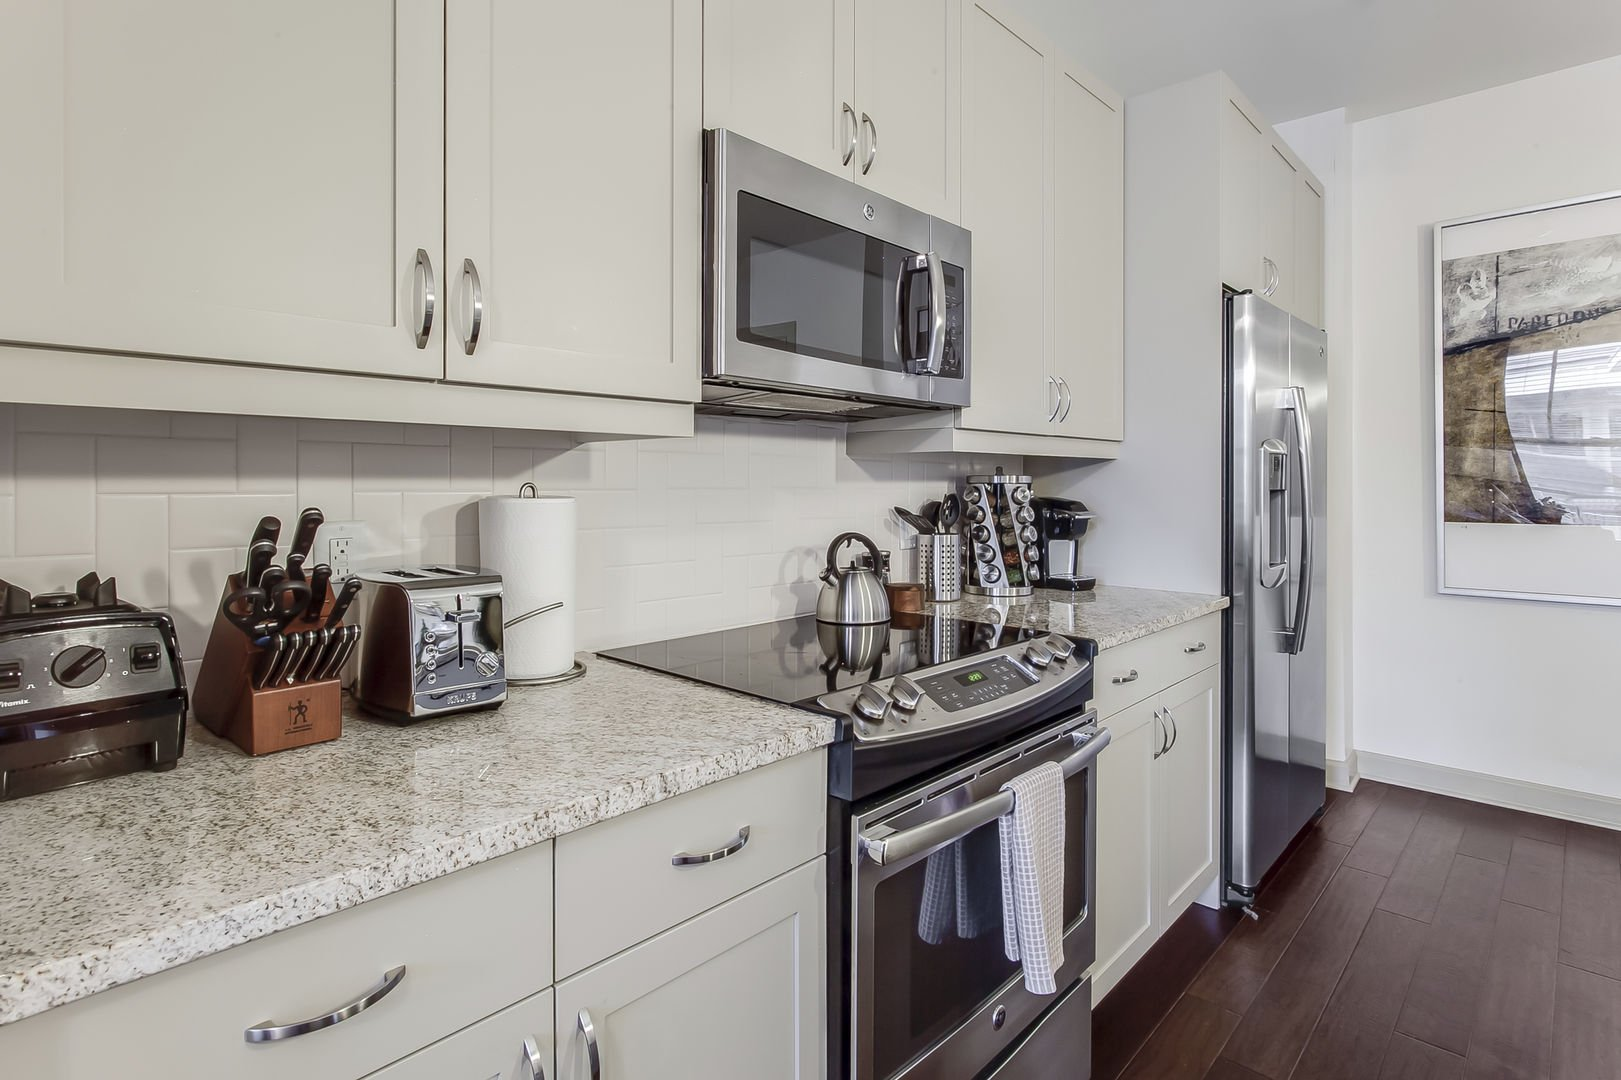 This Atlanta Rental Apartment has a kitchen area with stove and microwave